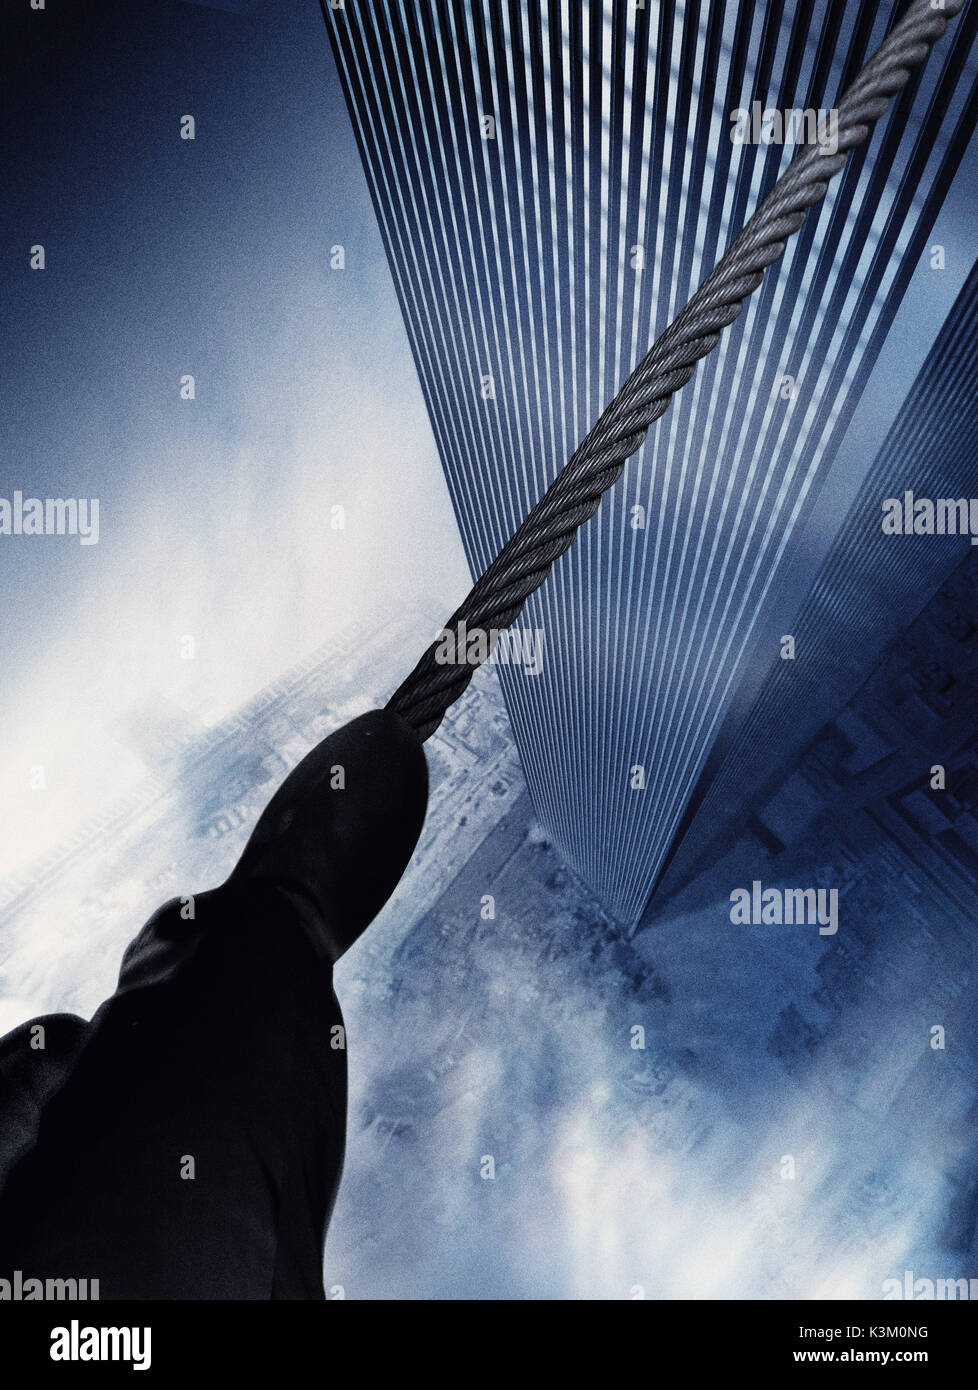 Man On Wire Stock Photos & Man On Wire Stock Images - Alamy